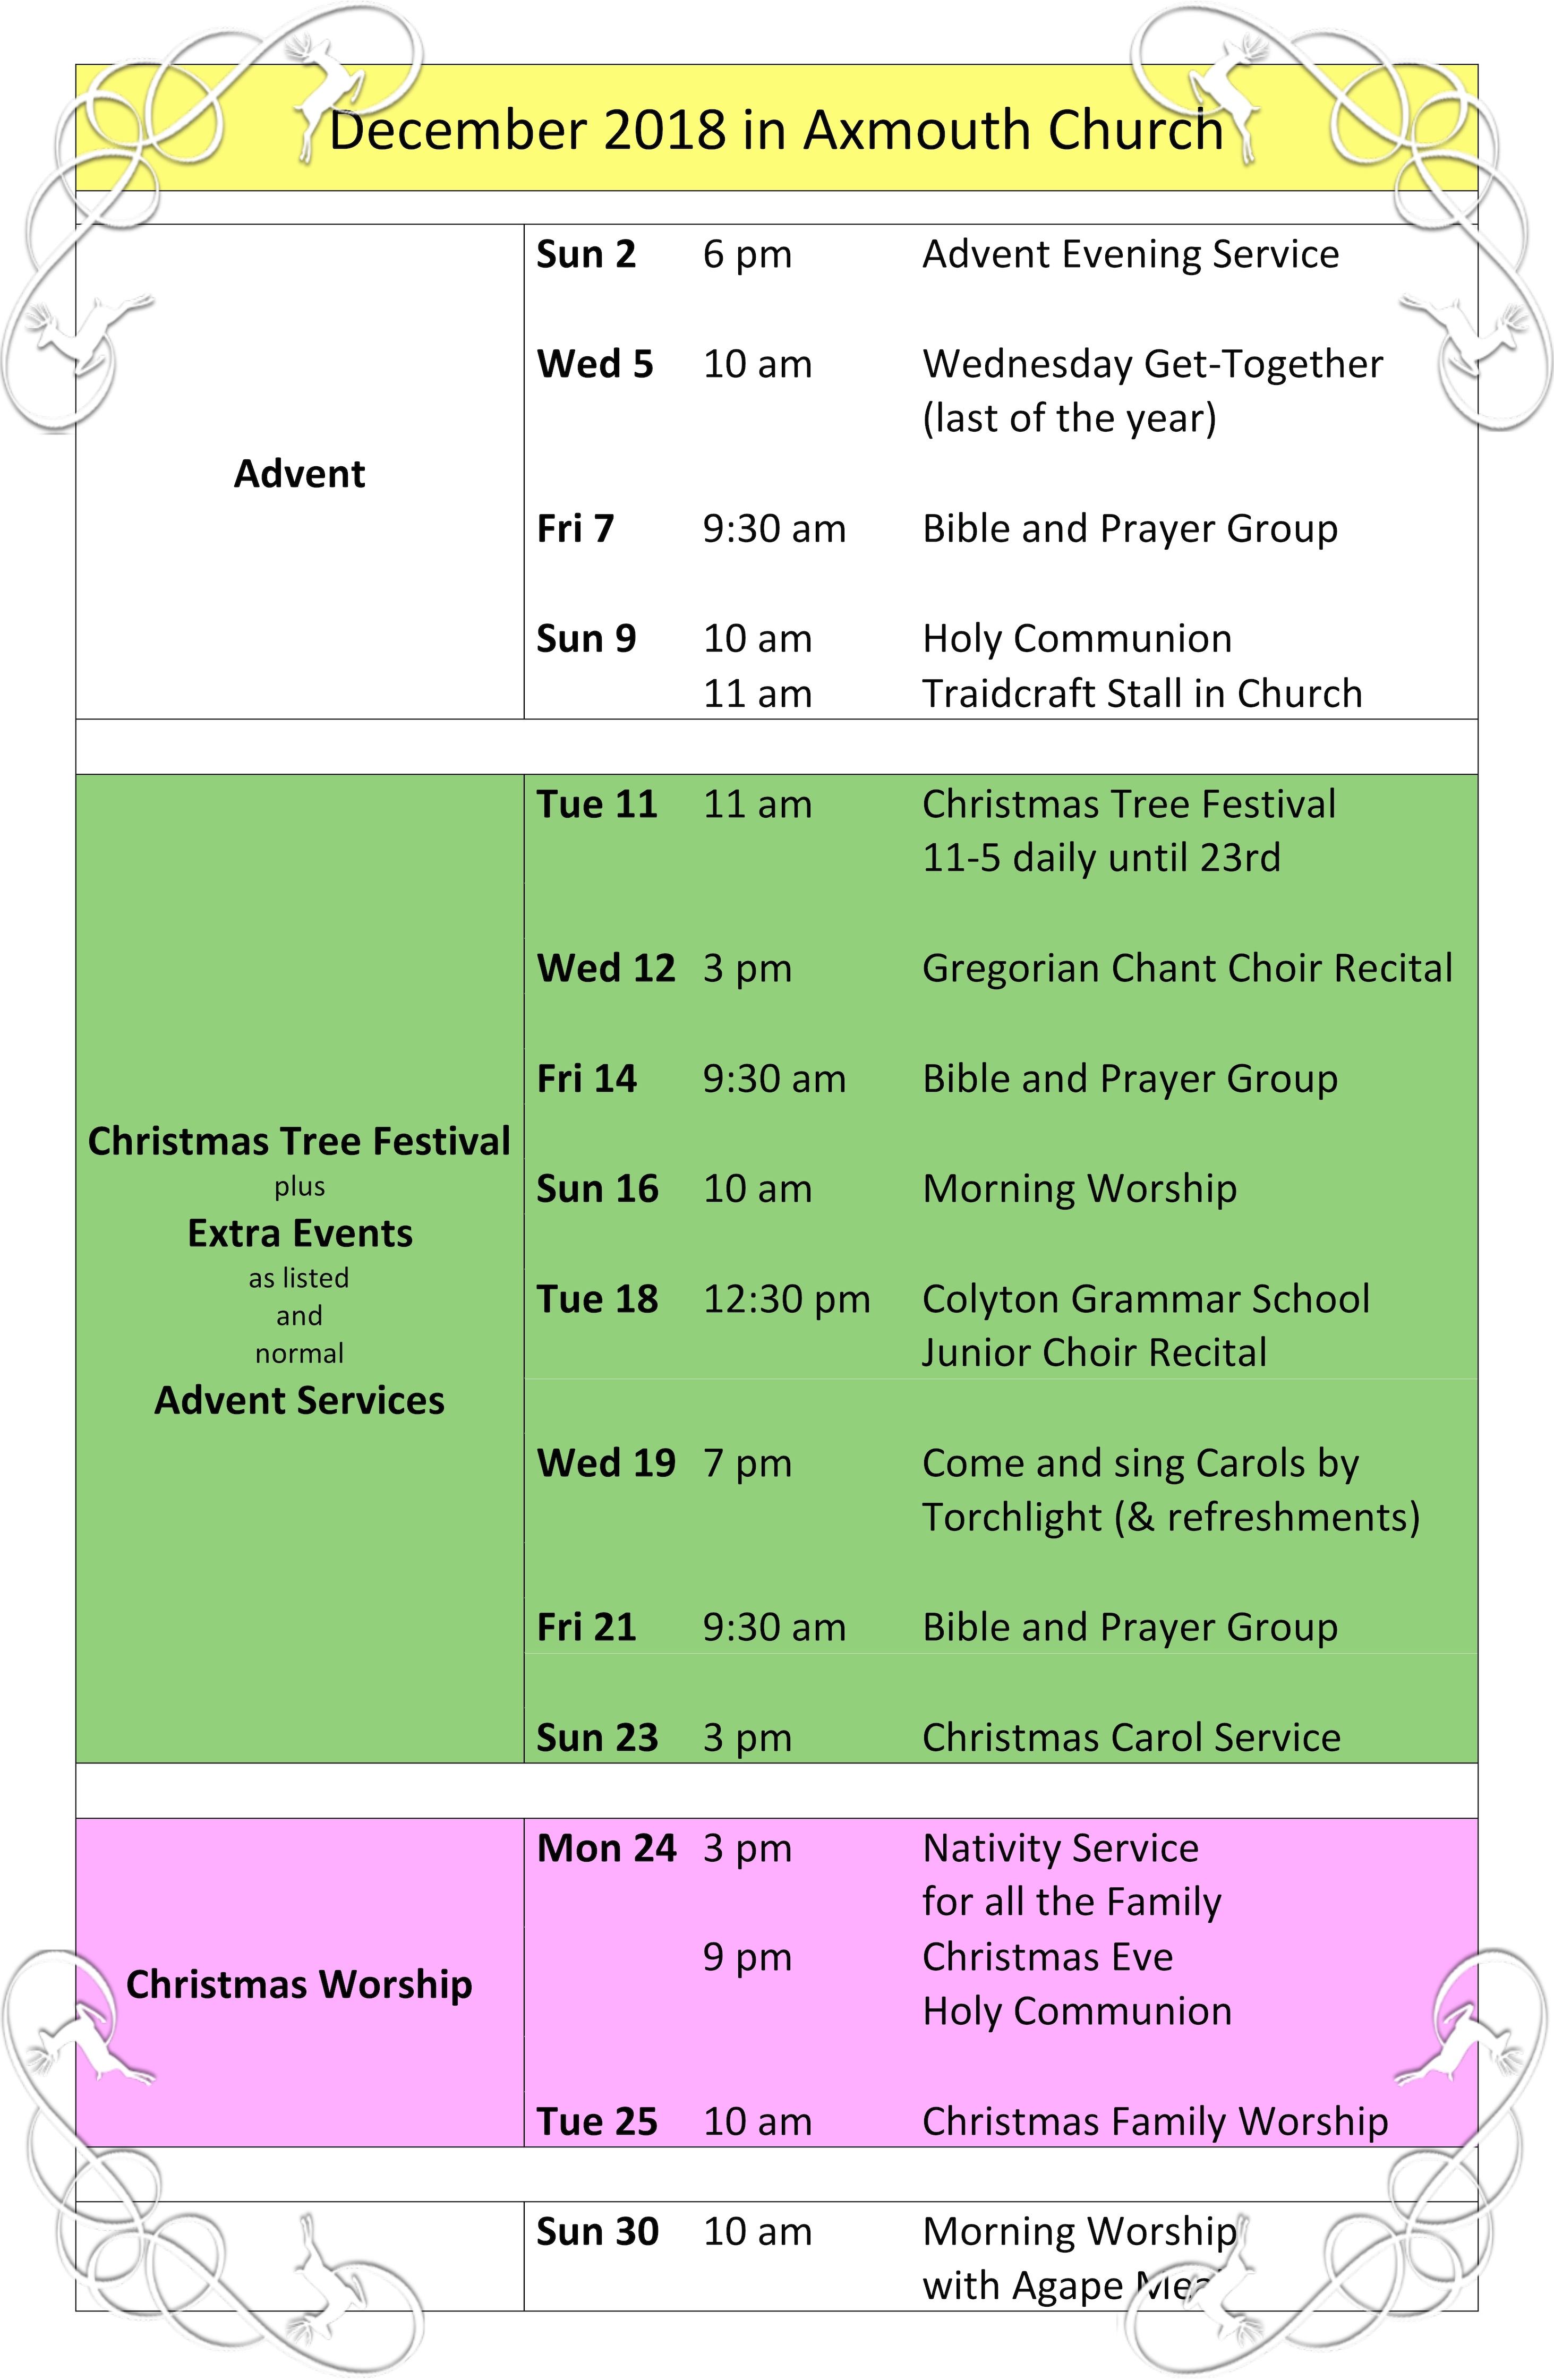 What's On in December?